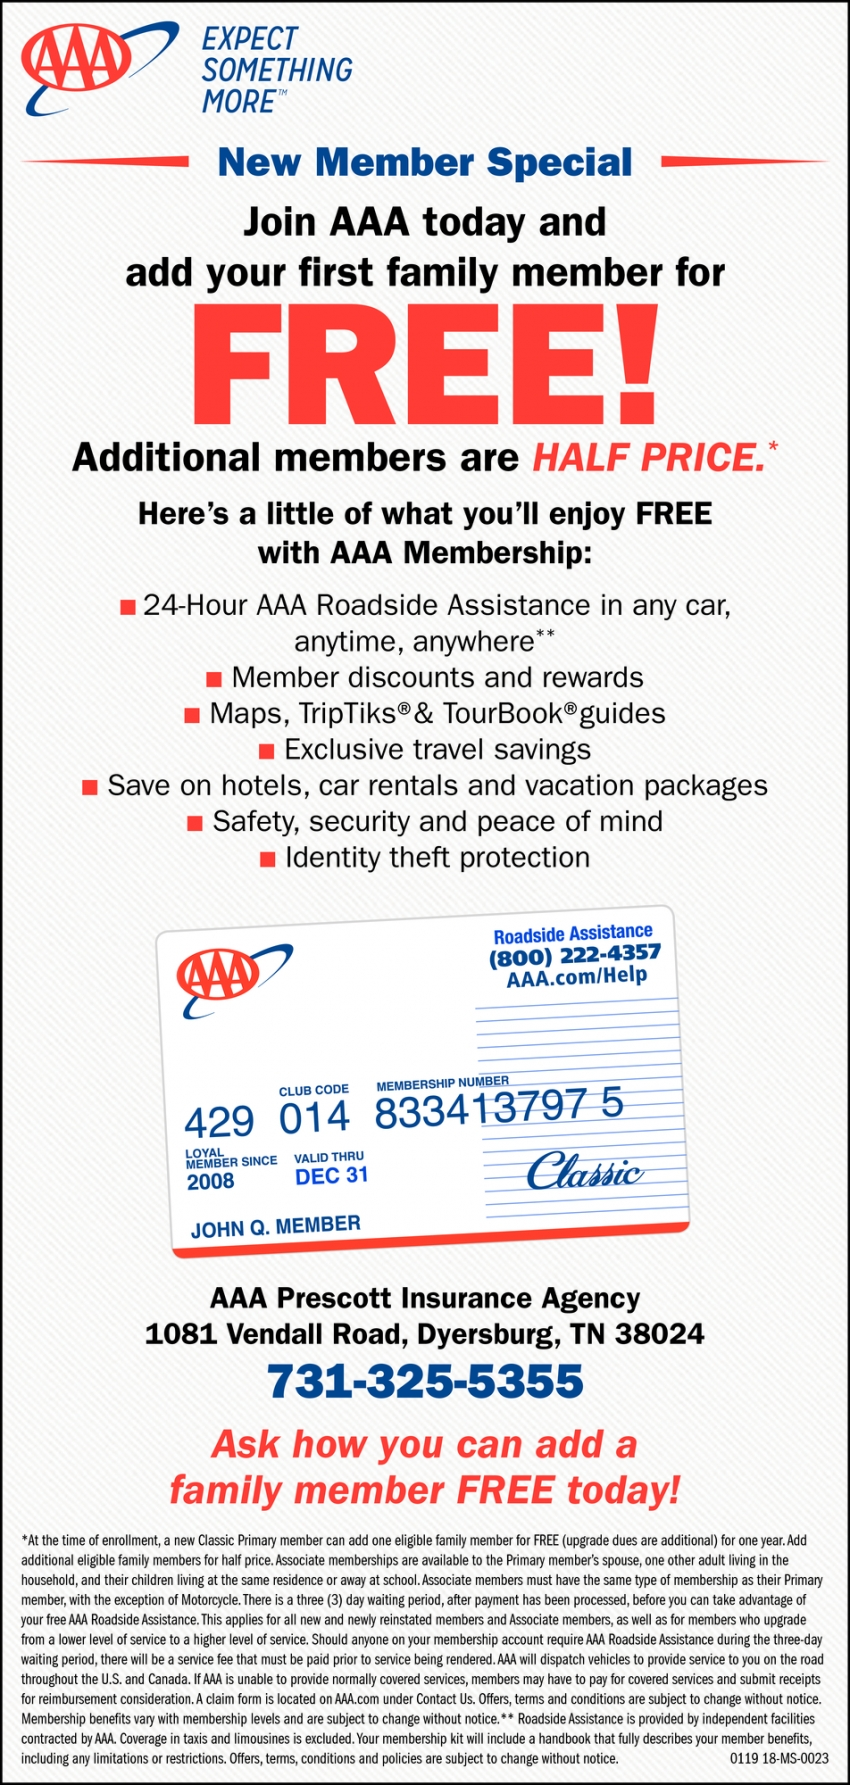 Join AAA Today and Add Your First Family Member for FREE!